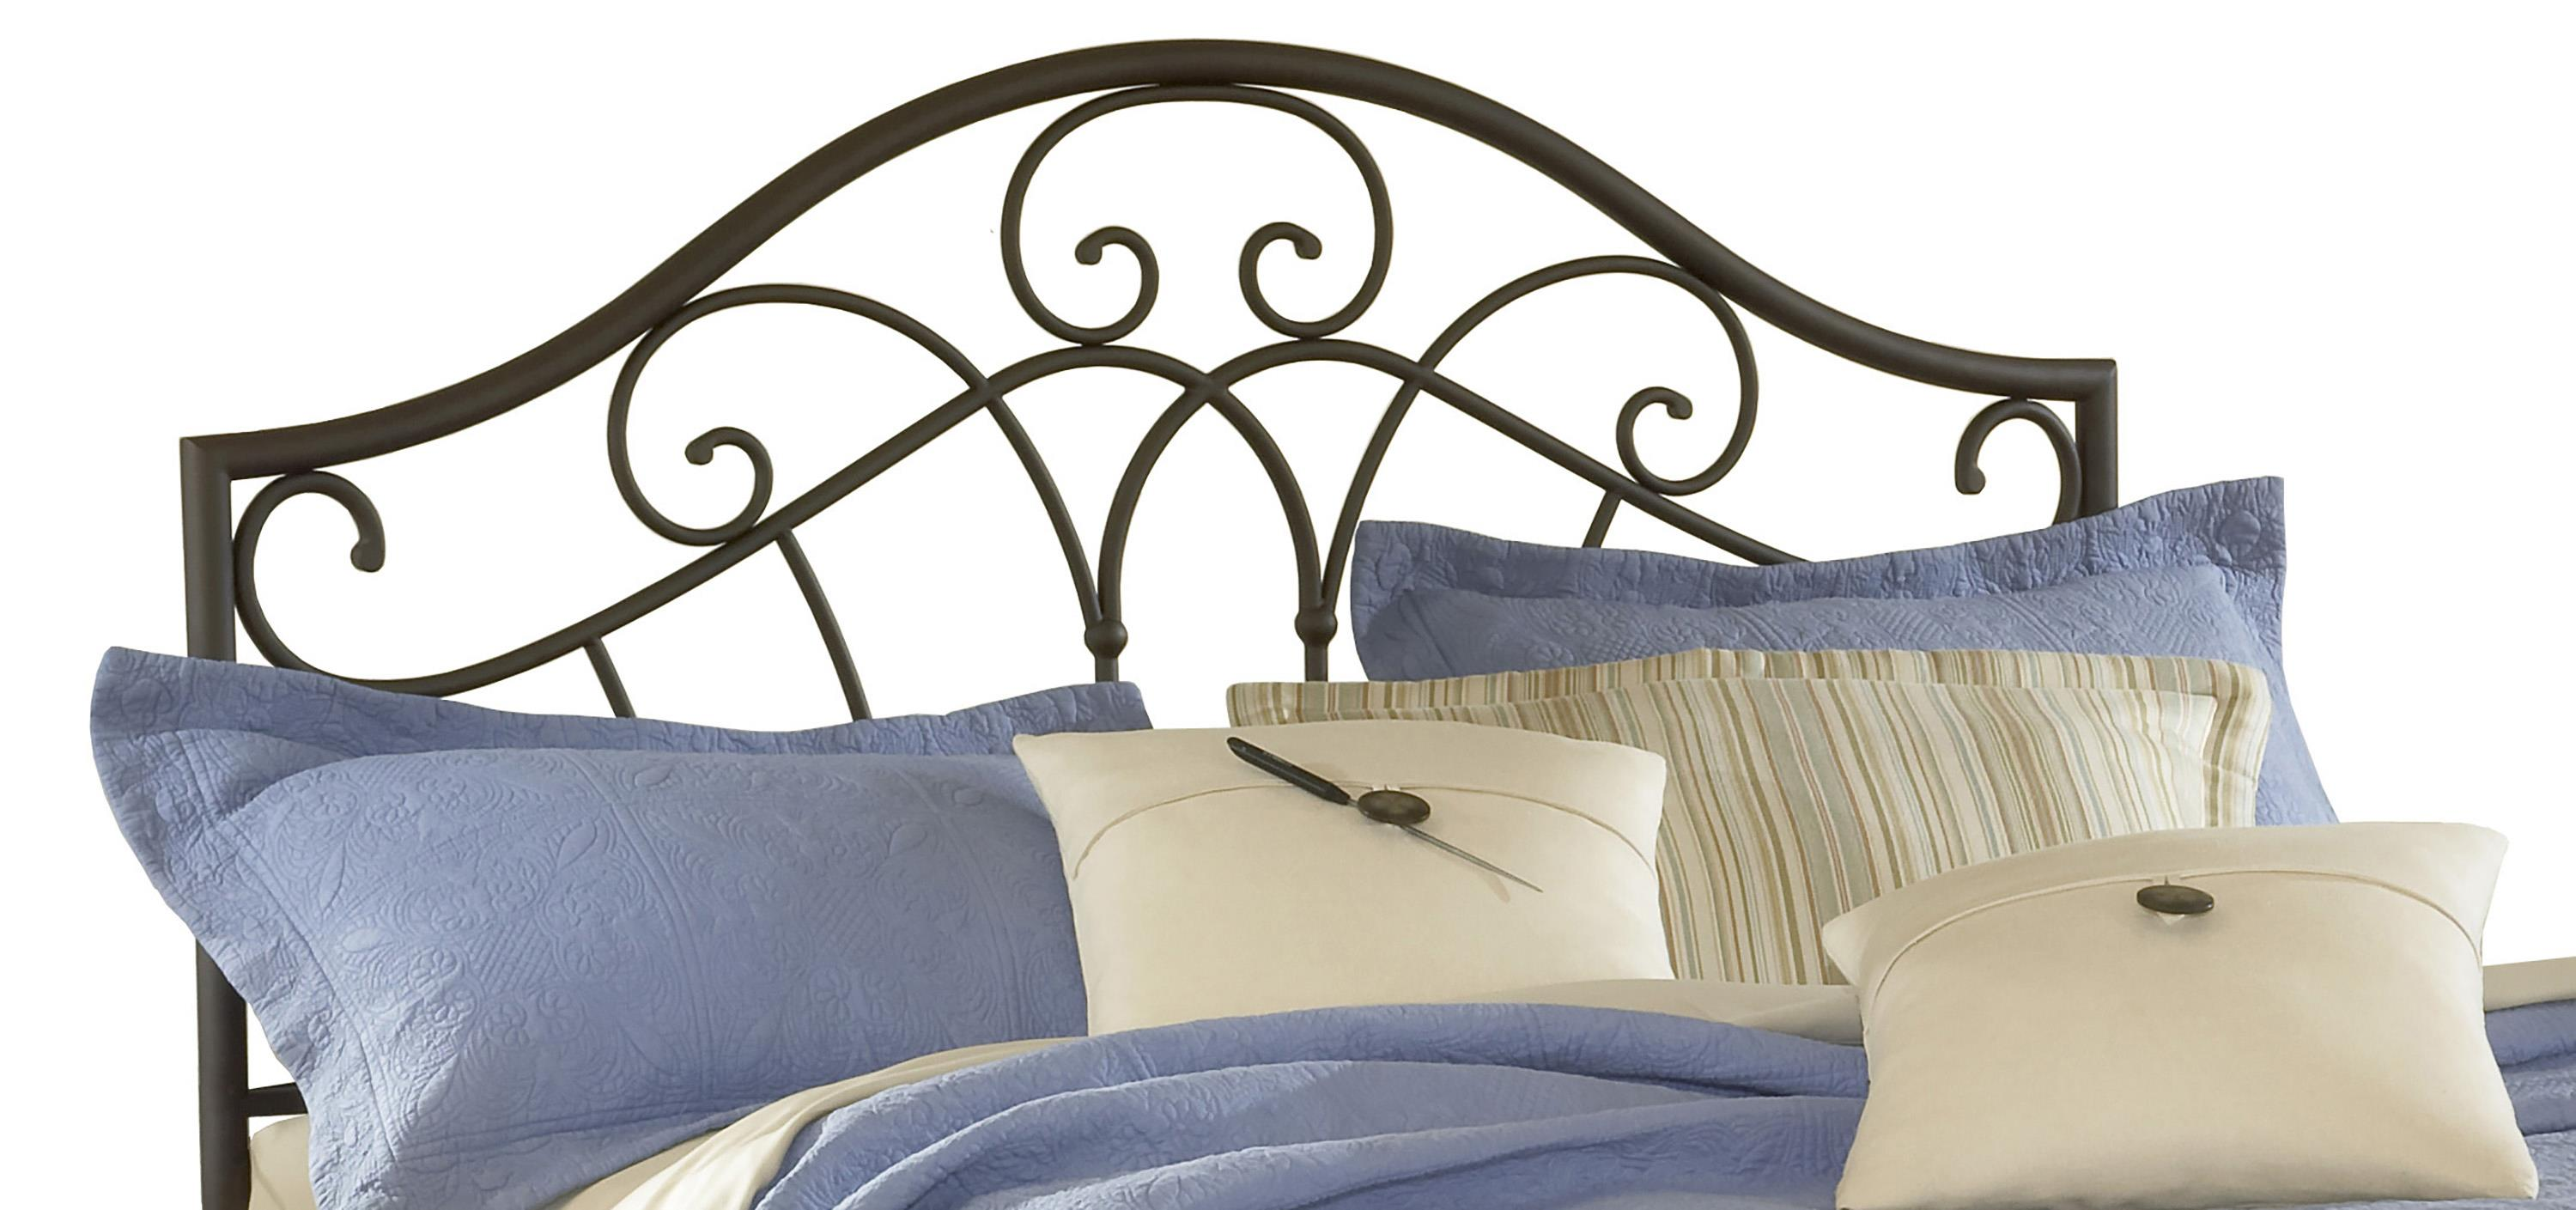 Hillsdale Metal Beds Josephine King Headboard with No Rails - Item Number: 1544-670